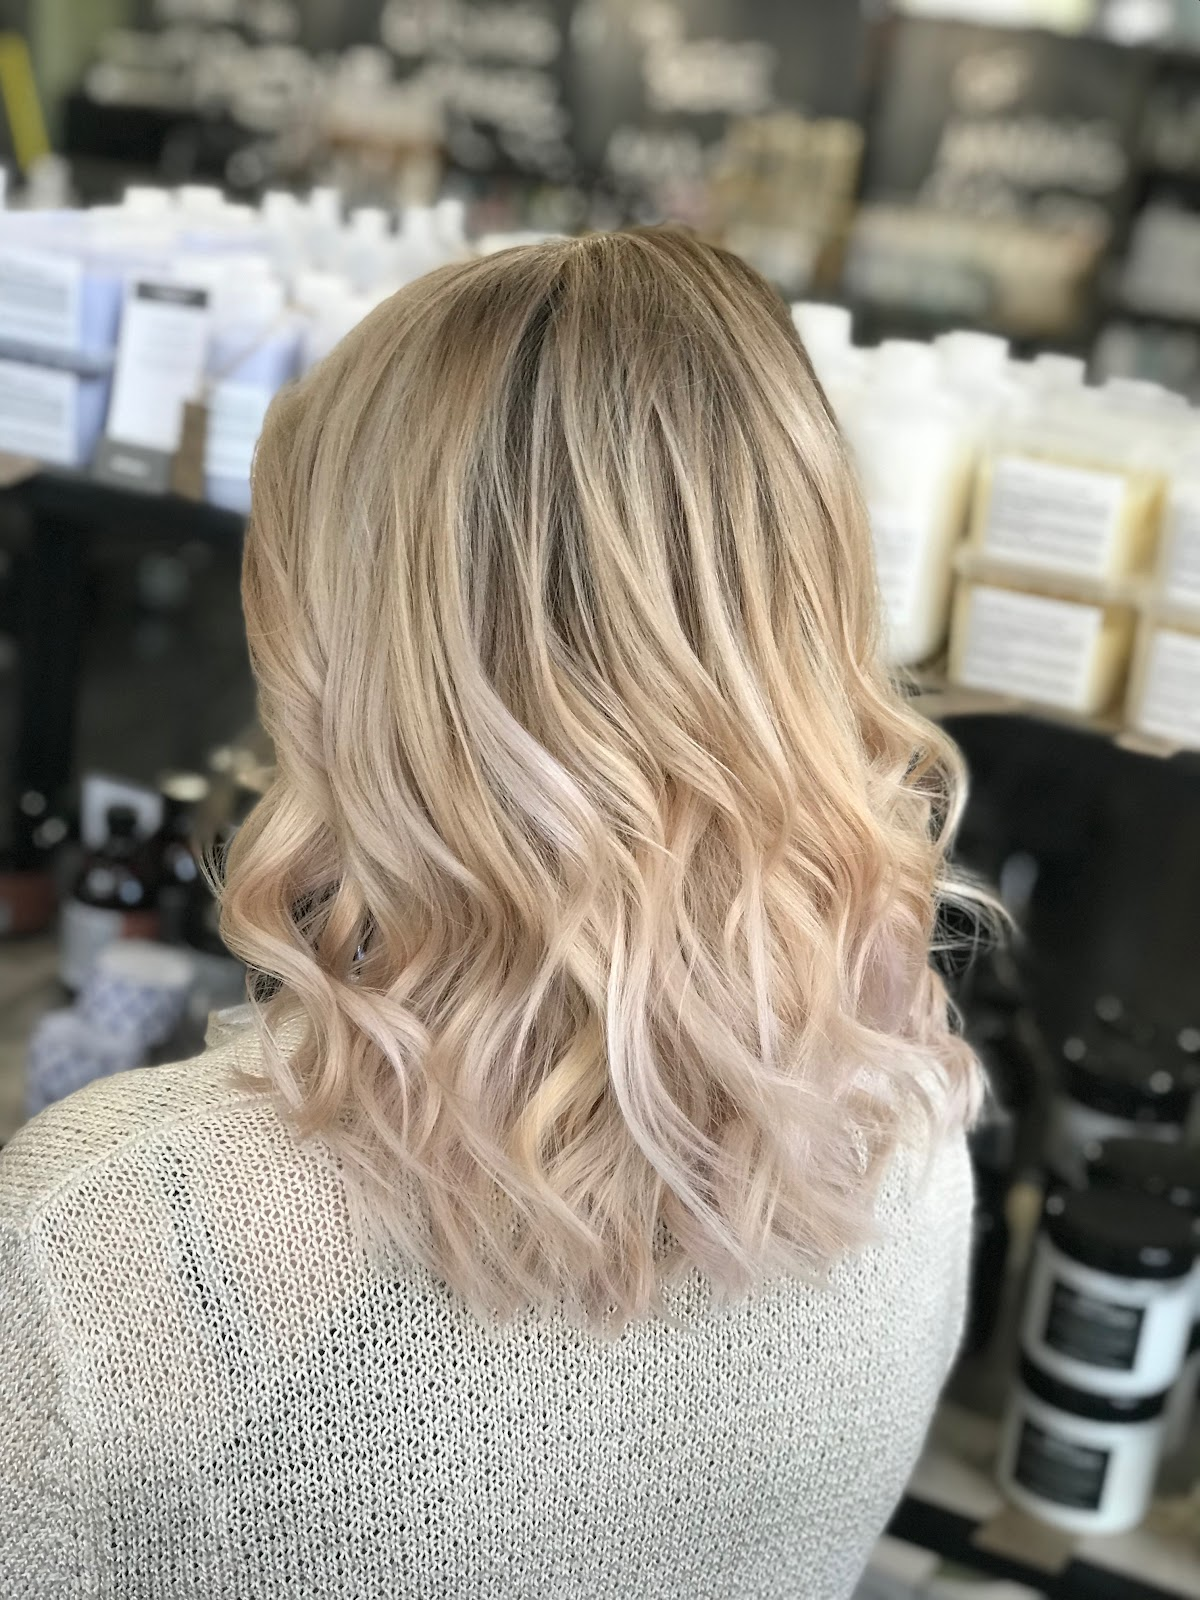 Full Balayage on Medium Hair